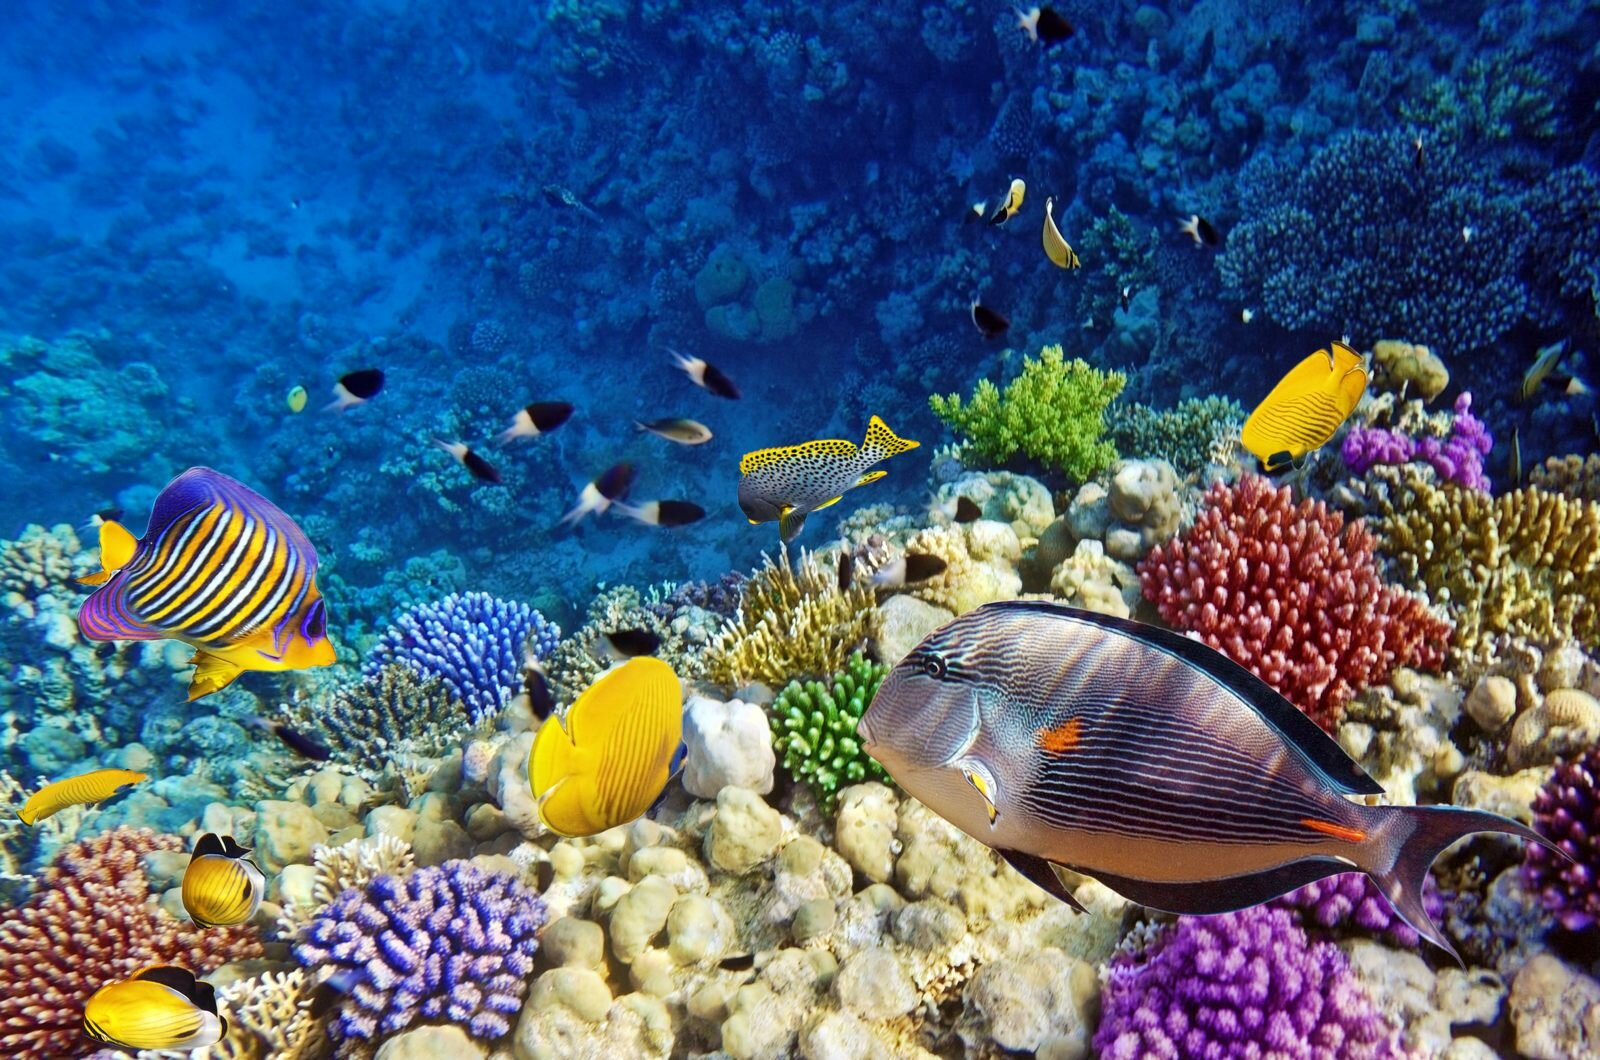 15 Pics Of Amazing Coral Reefs And Fishes